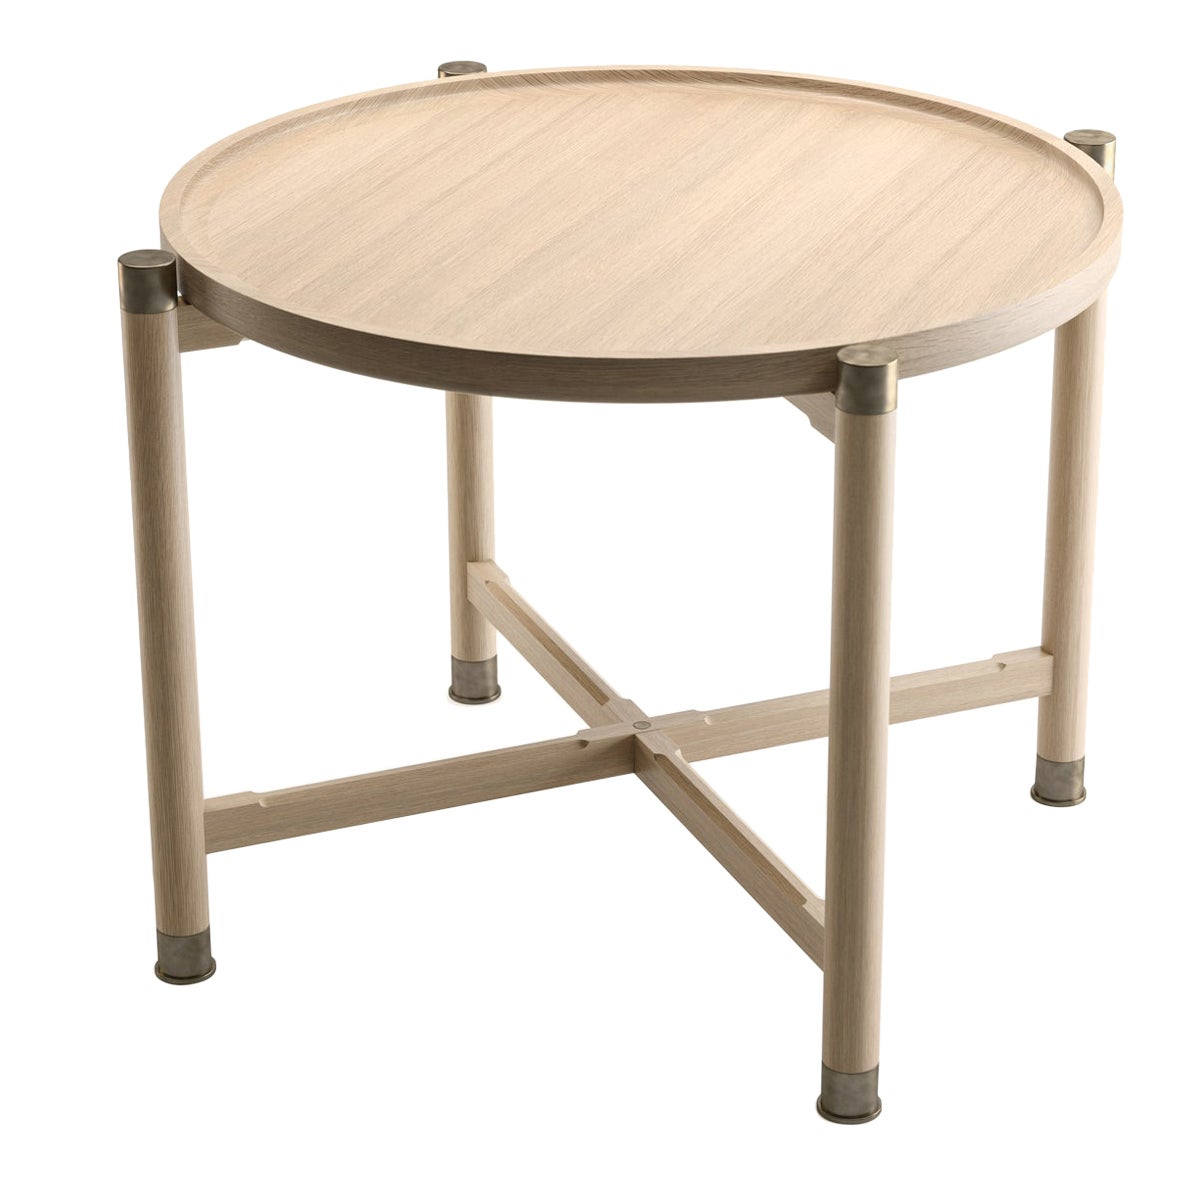 Otto Round Side Table in Bleached Oak with Antique Brass Fittings